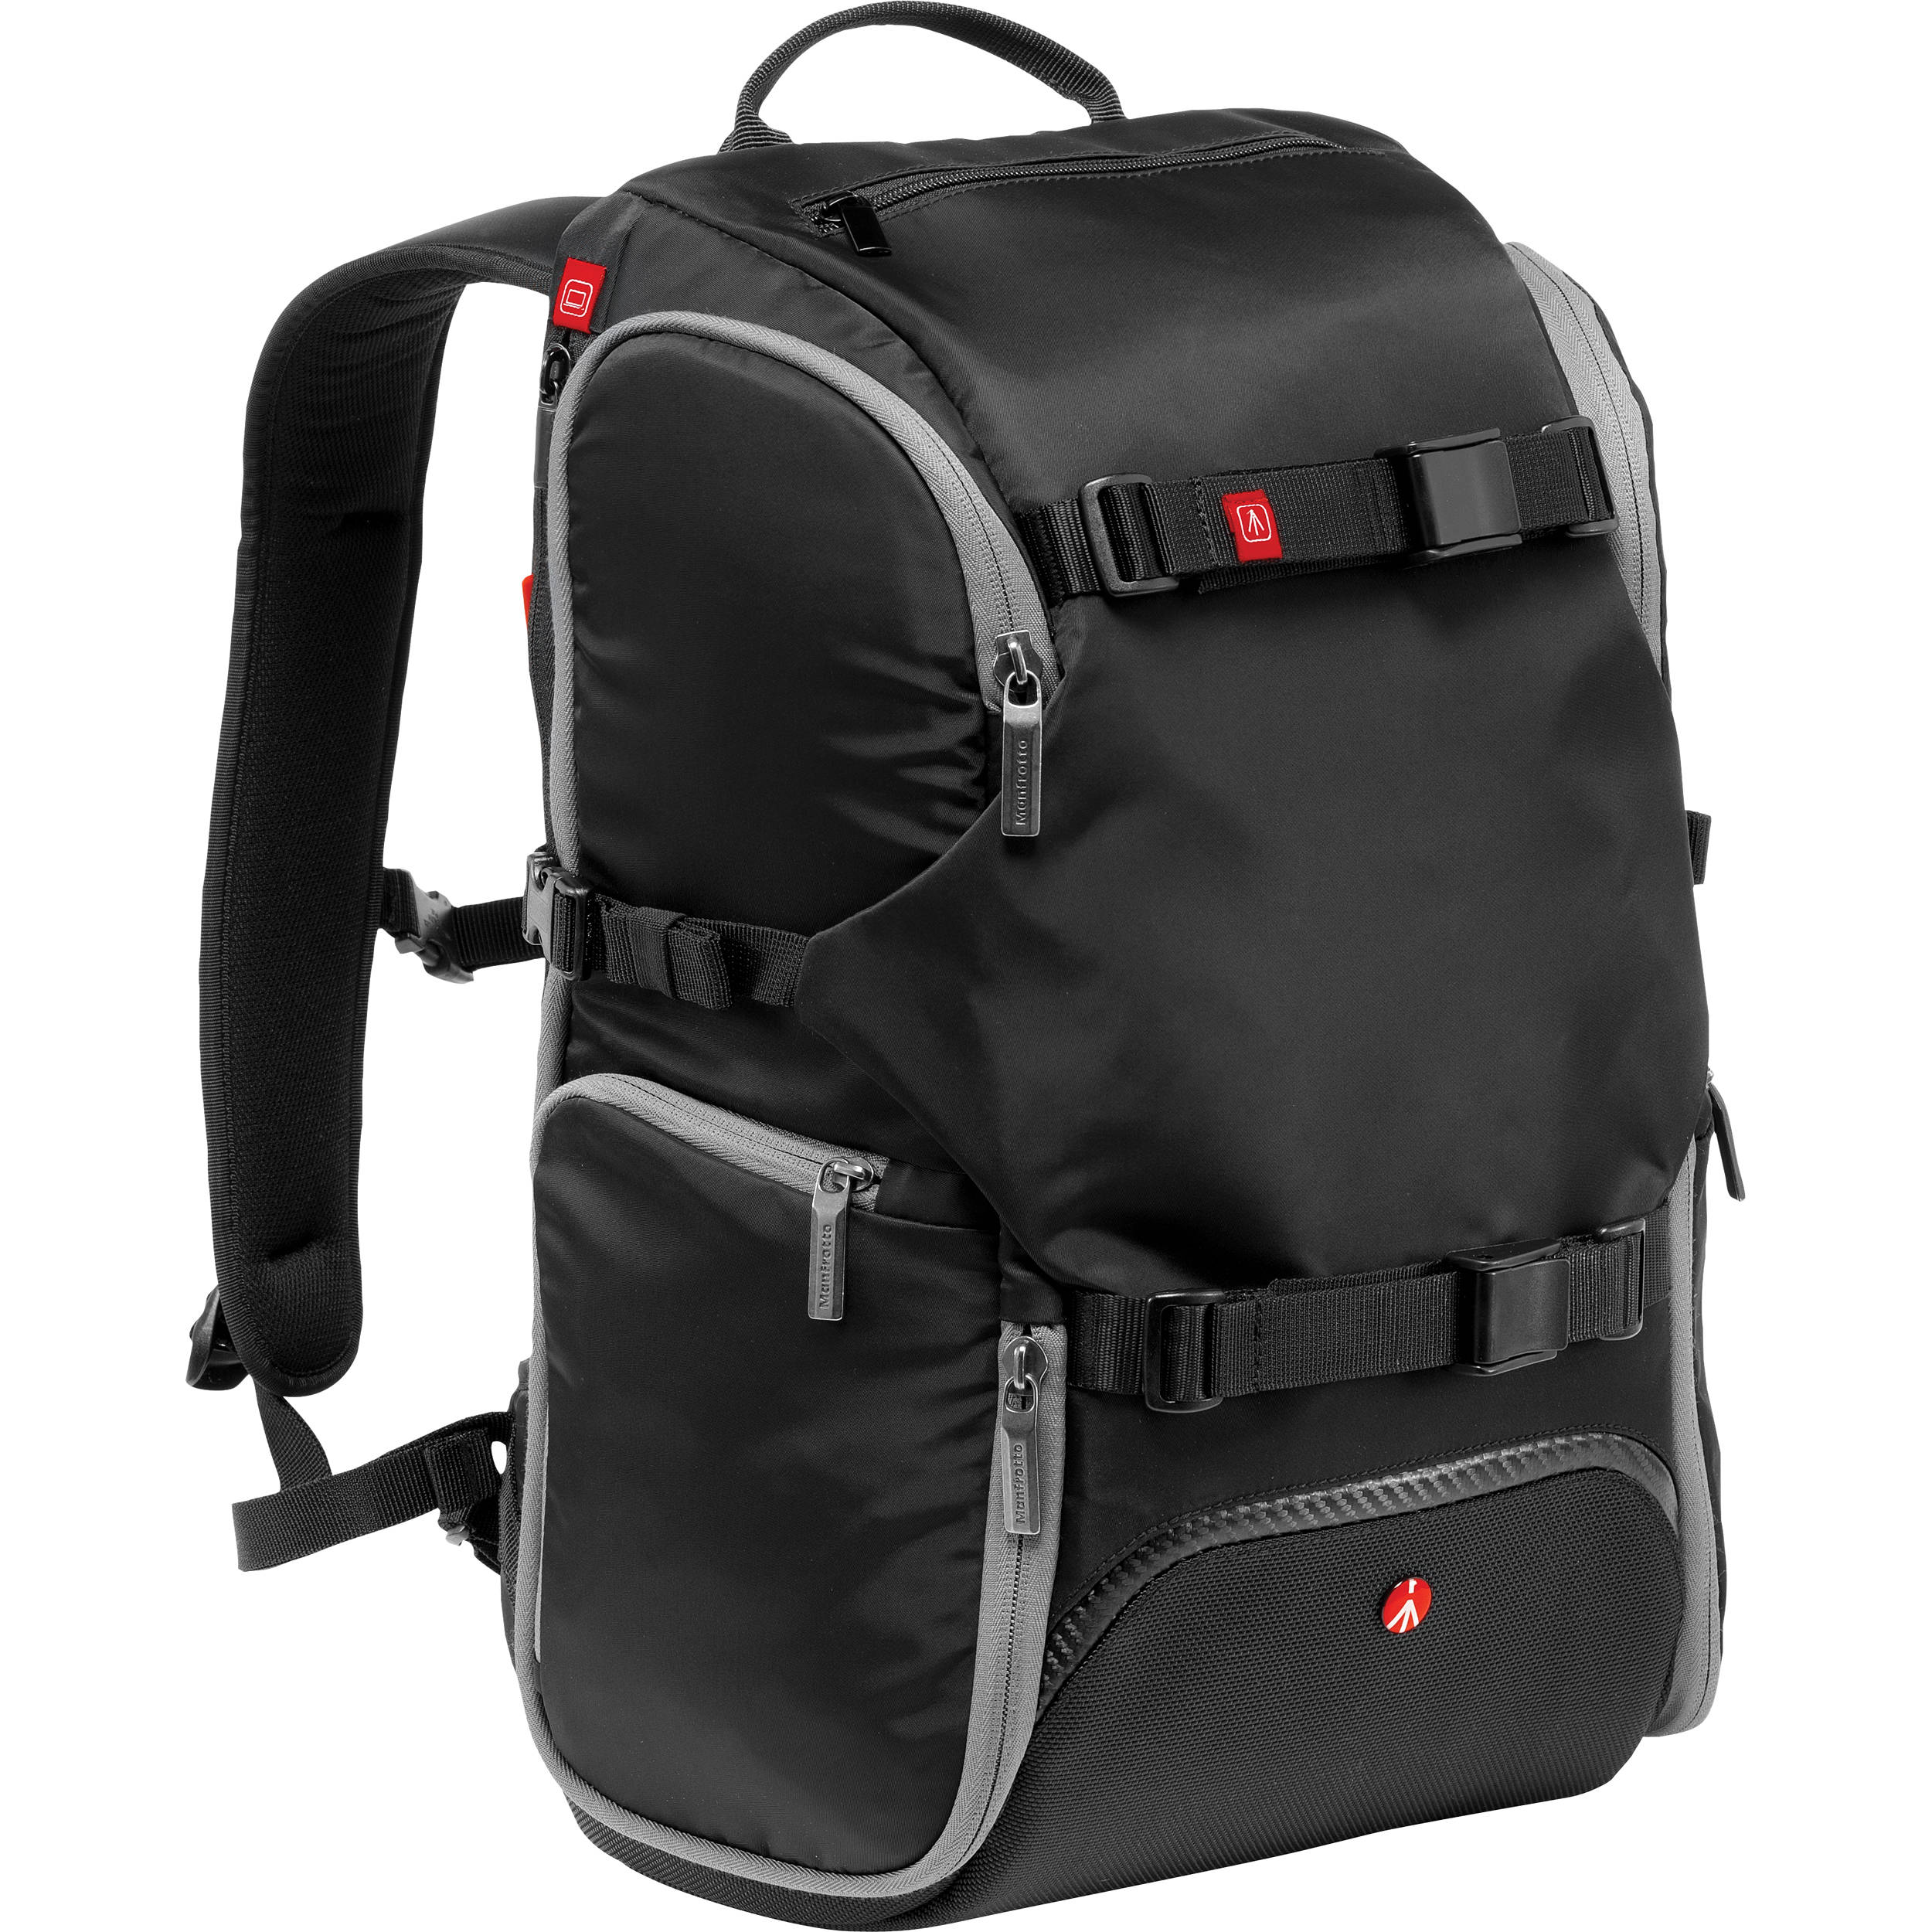 Backpacks For Travel h3OU9AJE